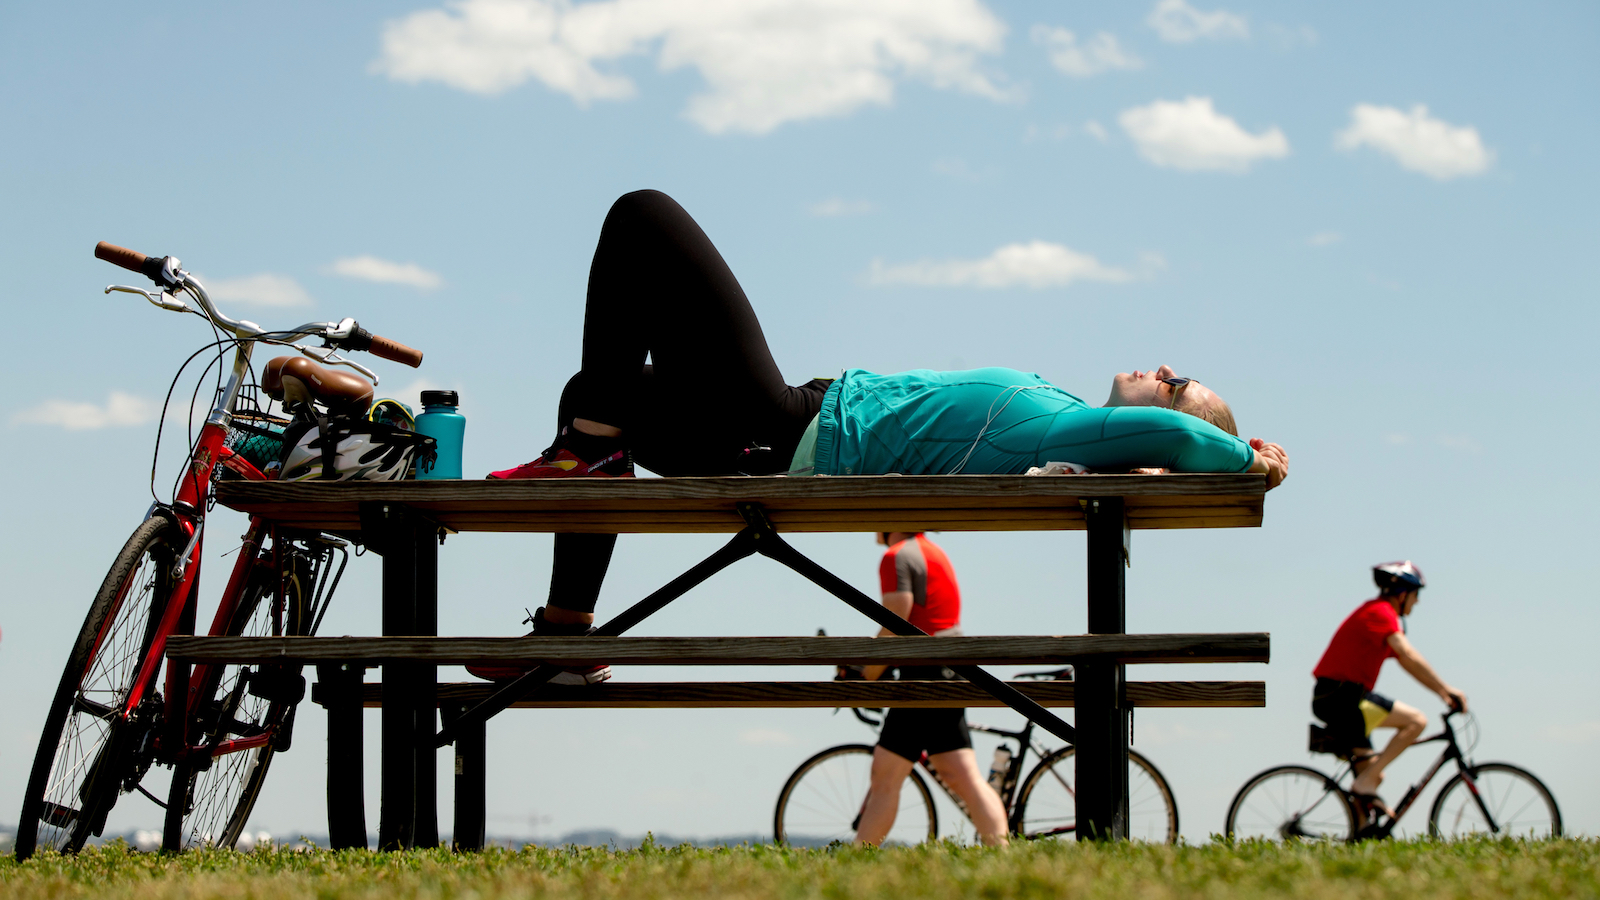 Julia Hurley of Washington relaxes on a picnic table at Gravelly Point Park in Arlington, Va., Wednesday, June 8, 2016, after bicycling to Mt. Vernon and back. (AP Photo/Andrew Harnik)